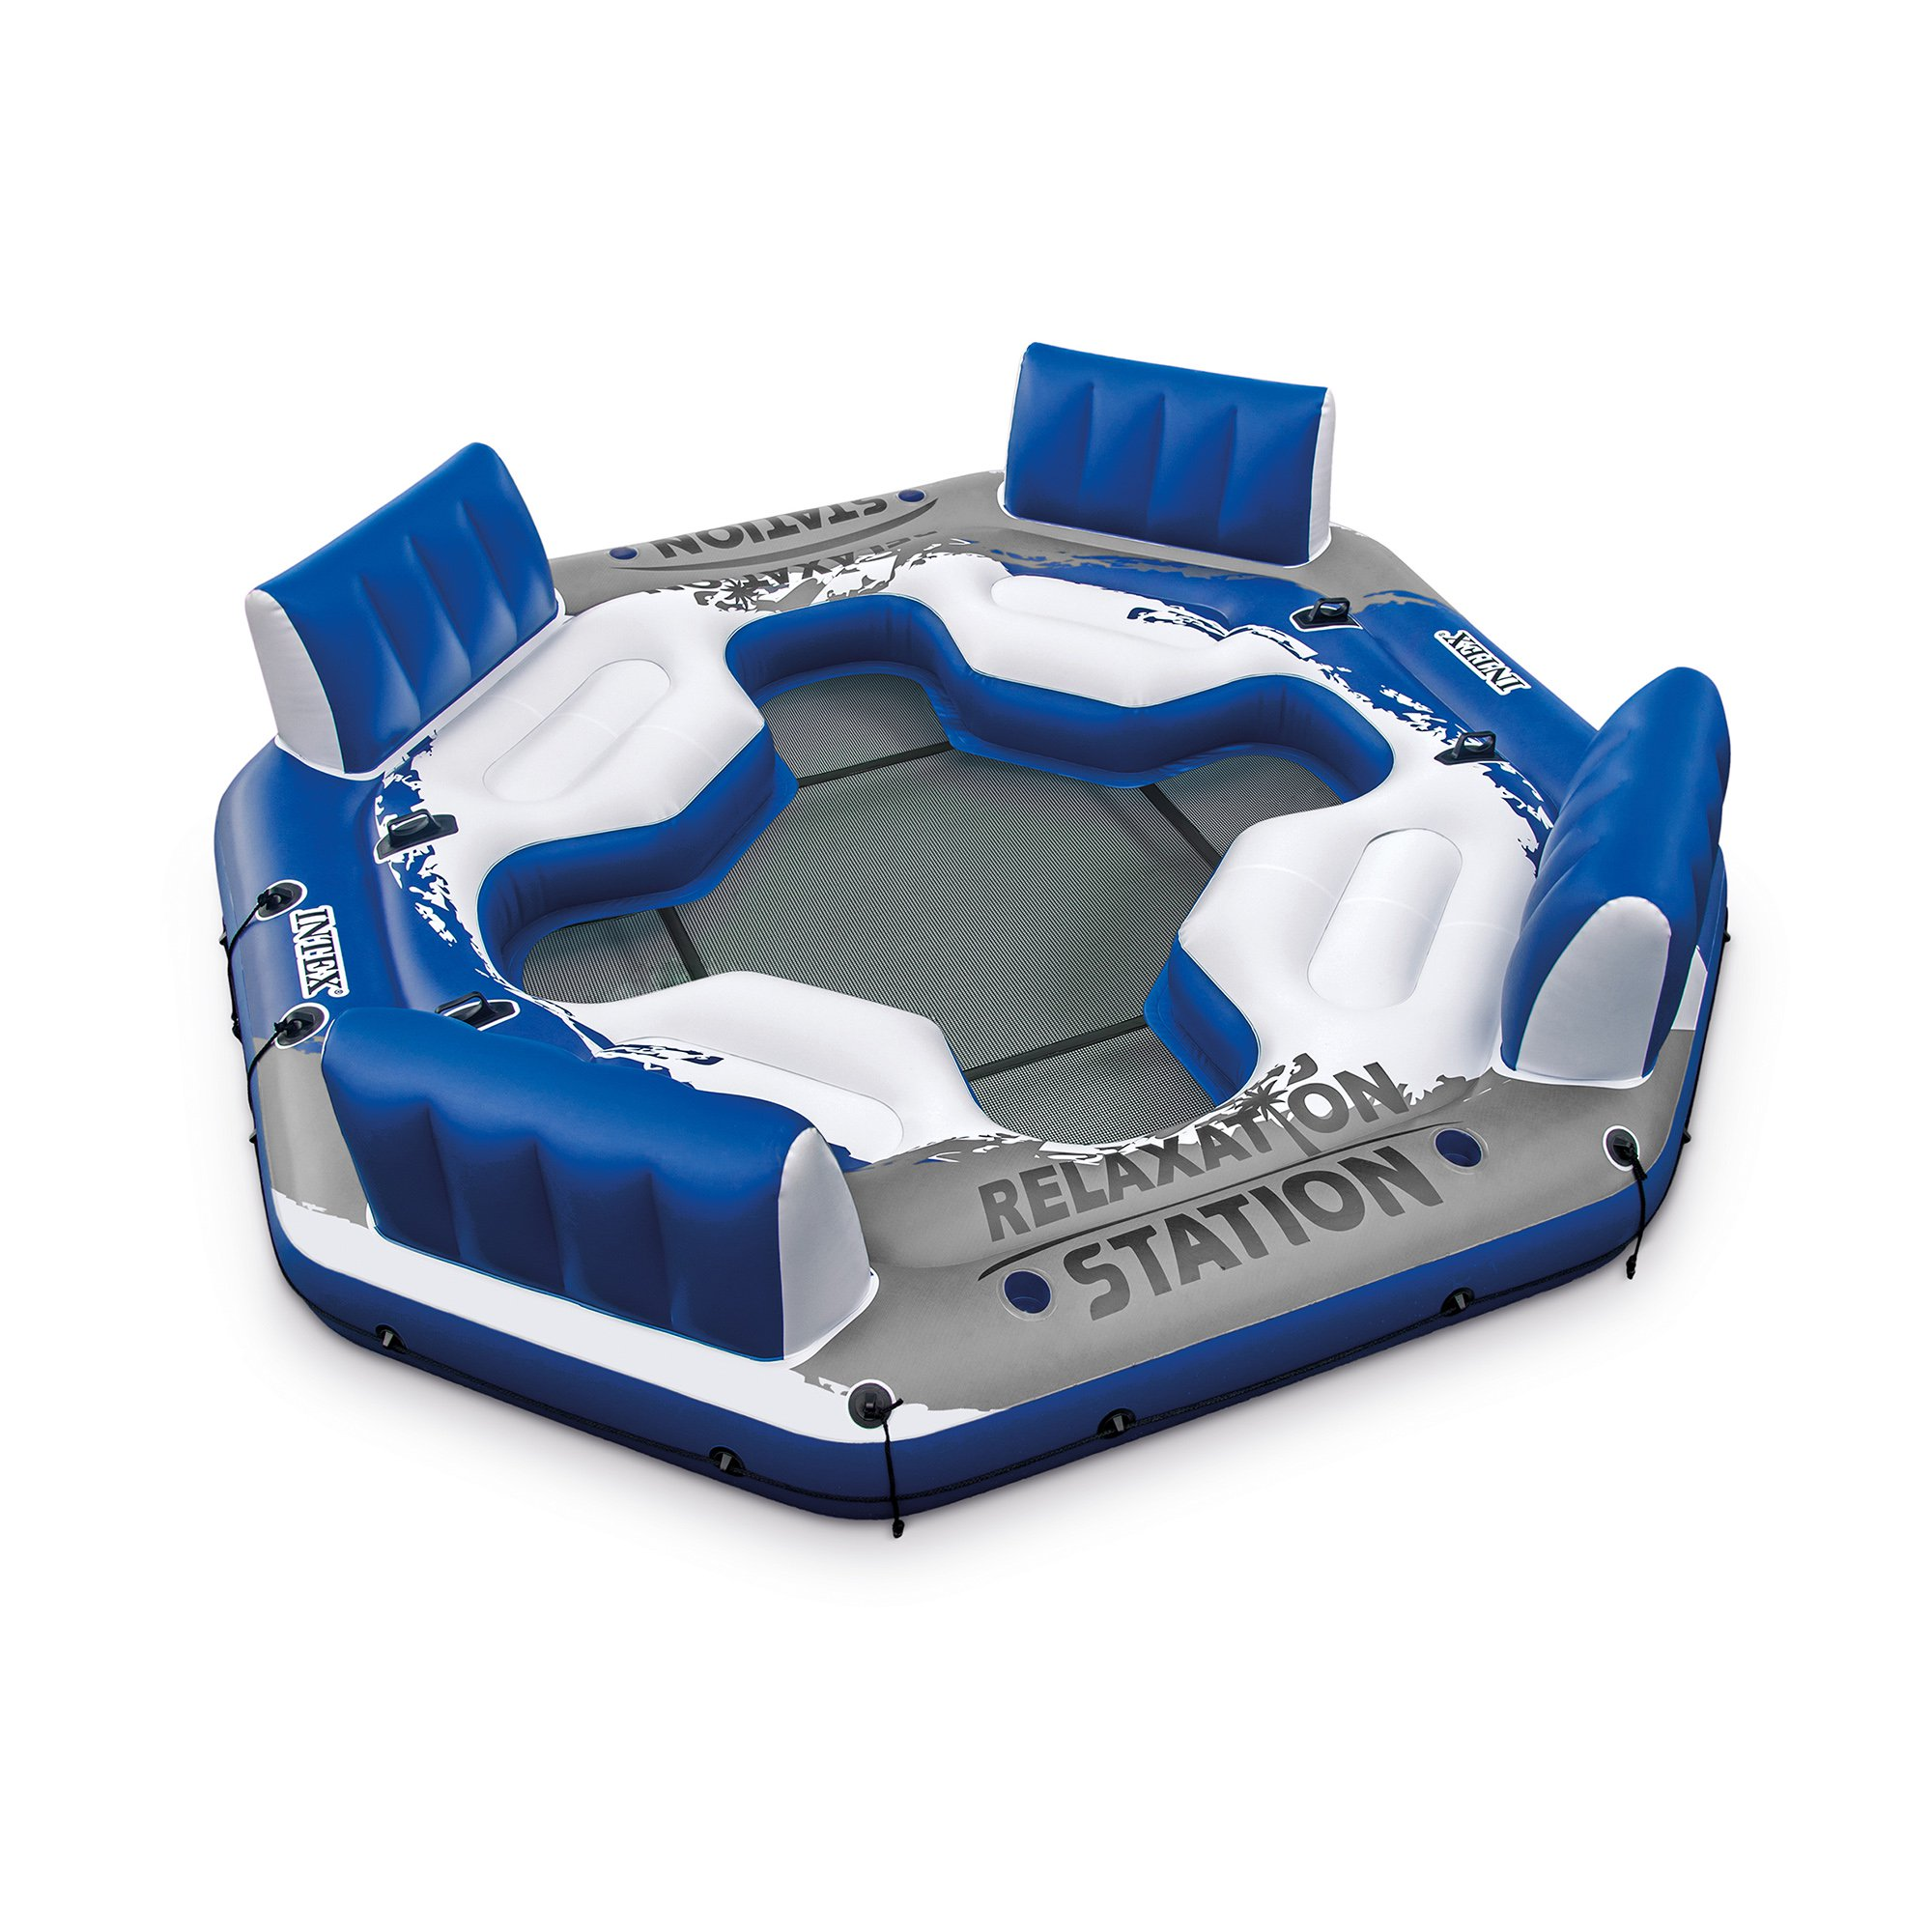 Intex Inflatable Pacific Paradise 4-Person Relaxation Station Lounge Lake Raft